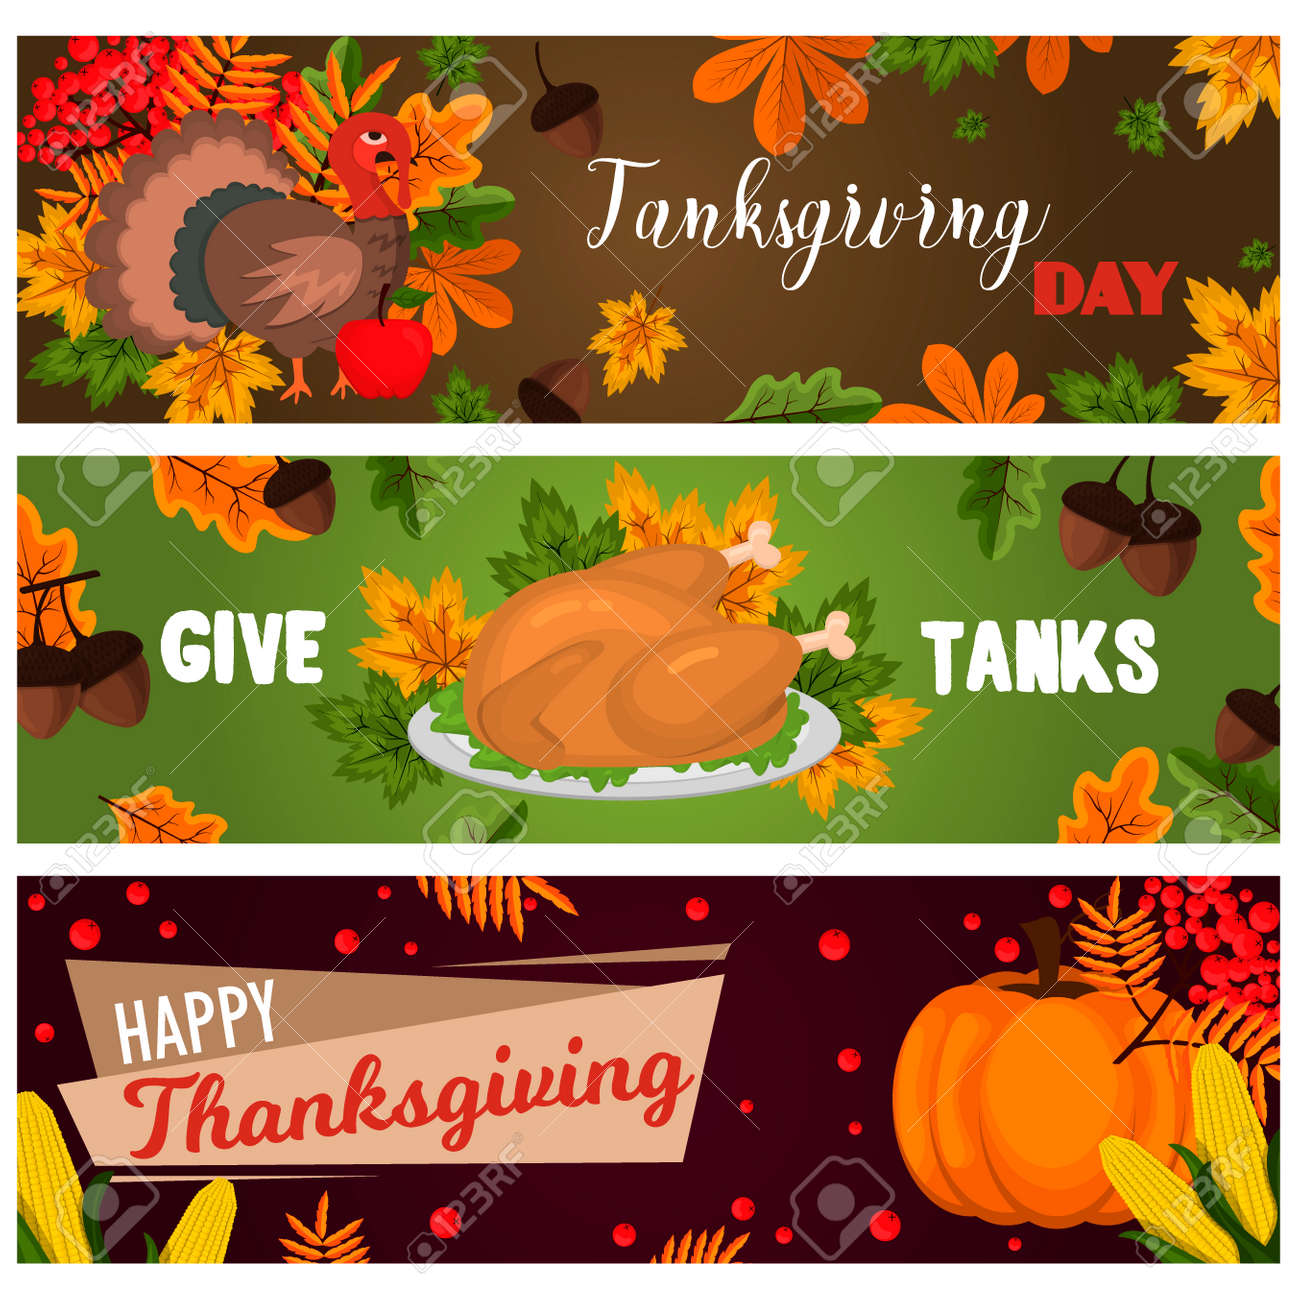 Happy Thanksgiving Cards Celebration Banner Design Cartoon Autumn